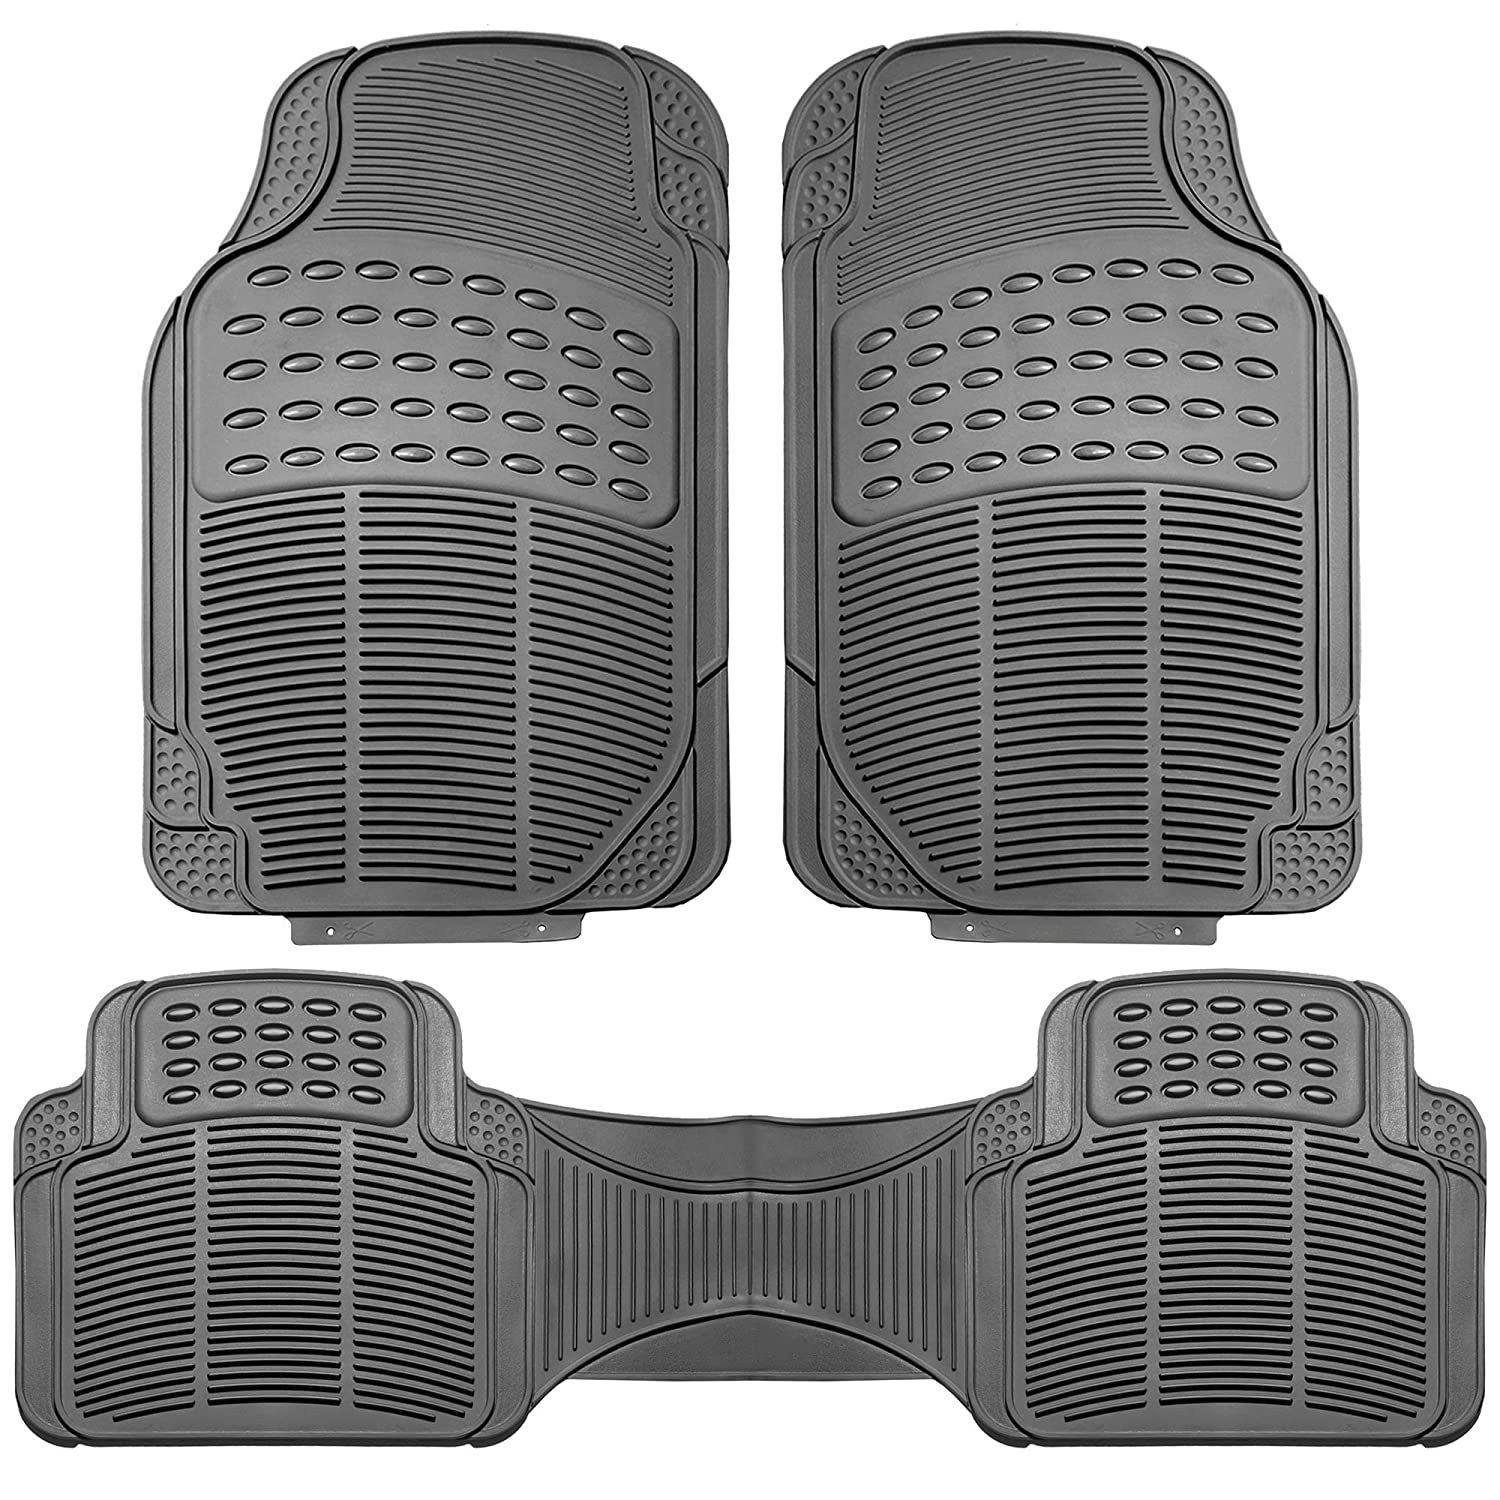 3 Piece FH Group F11306GRAY Gray All Weather Floor Mat Full Set Trimmable Heavy Duty